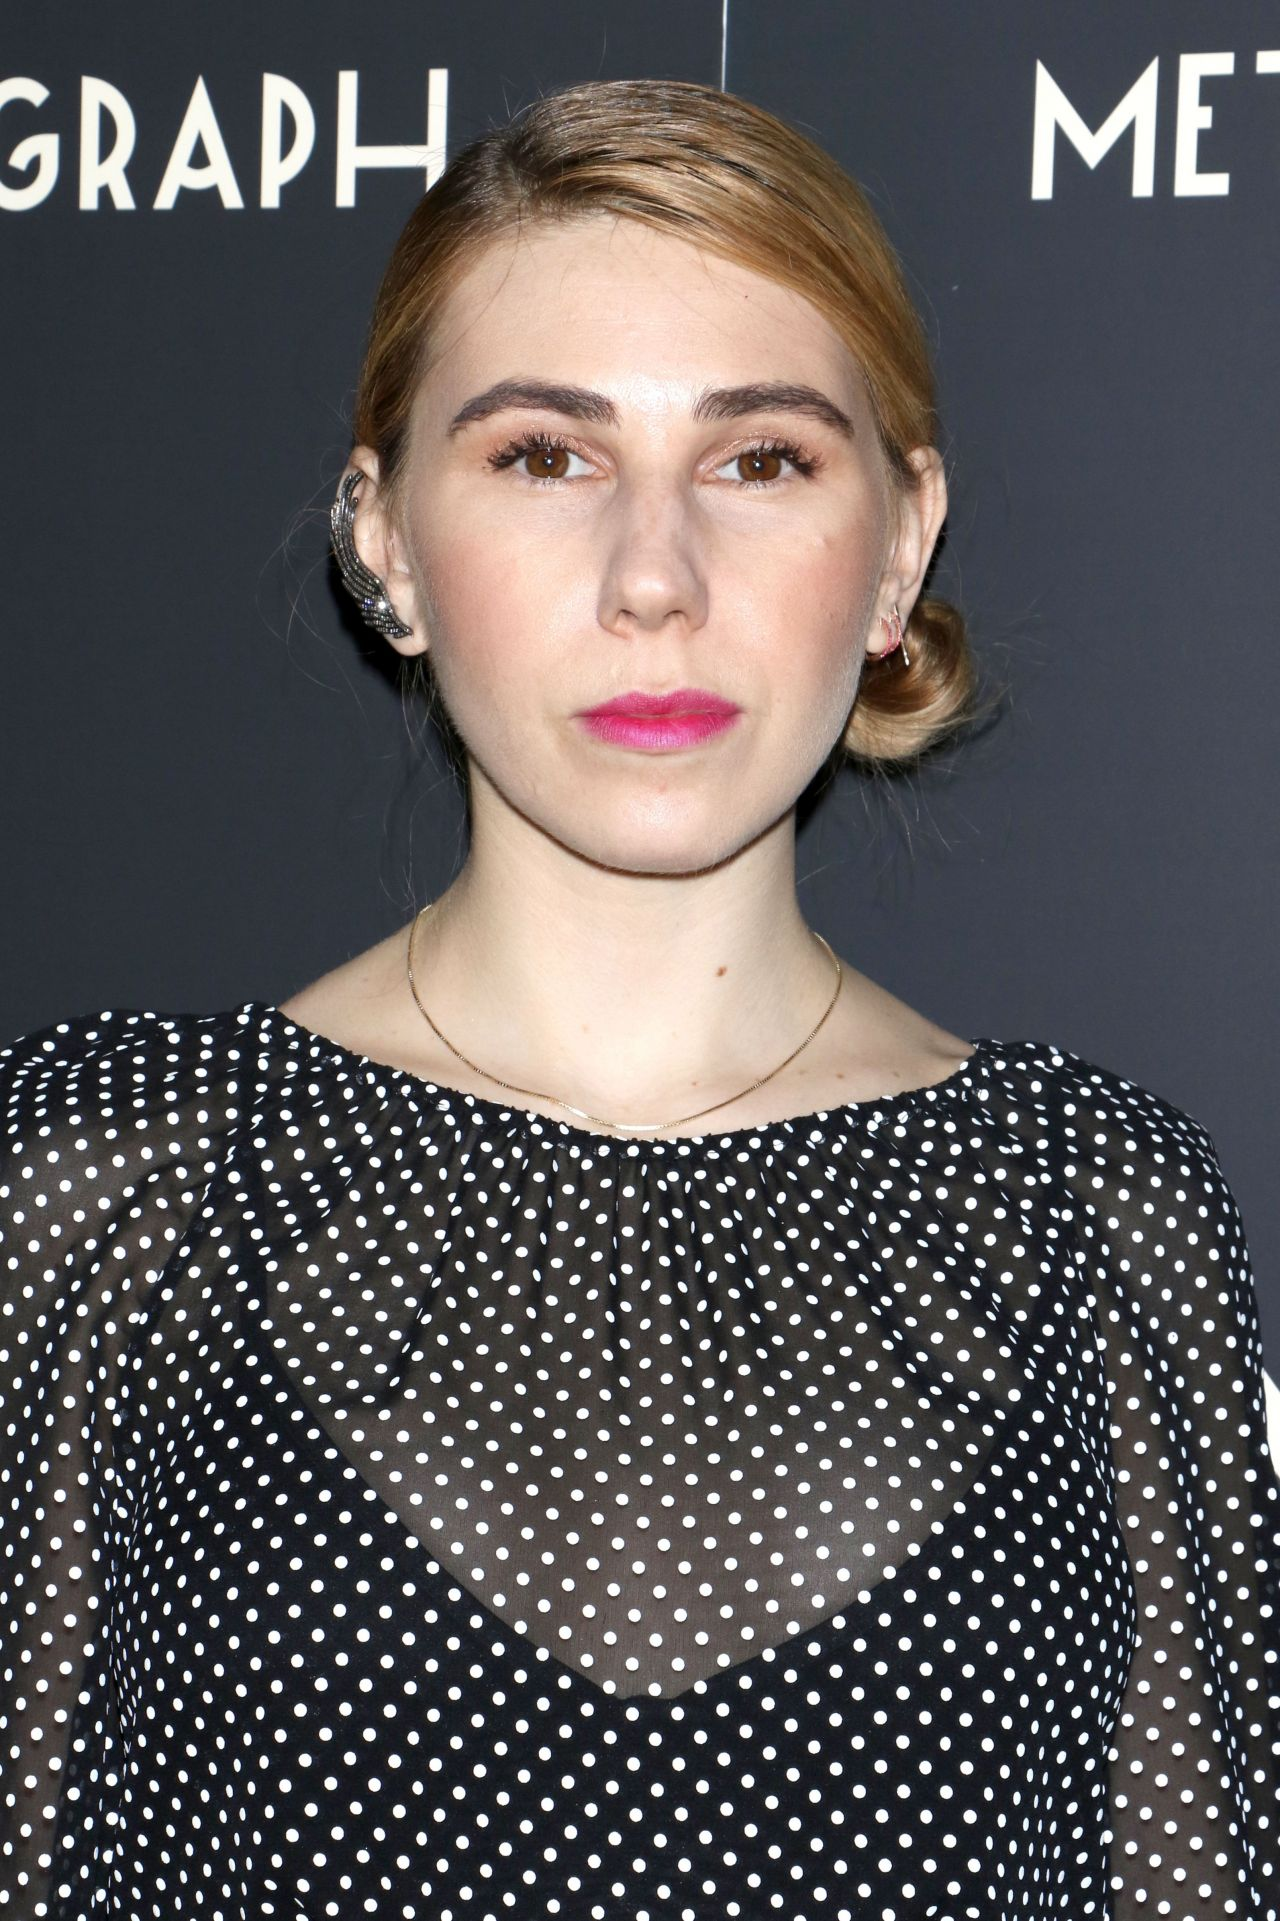 Zosia Mamet nude (67 photo), video Erotica, iCloud, swimsuit 2016